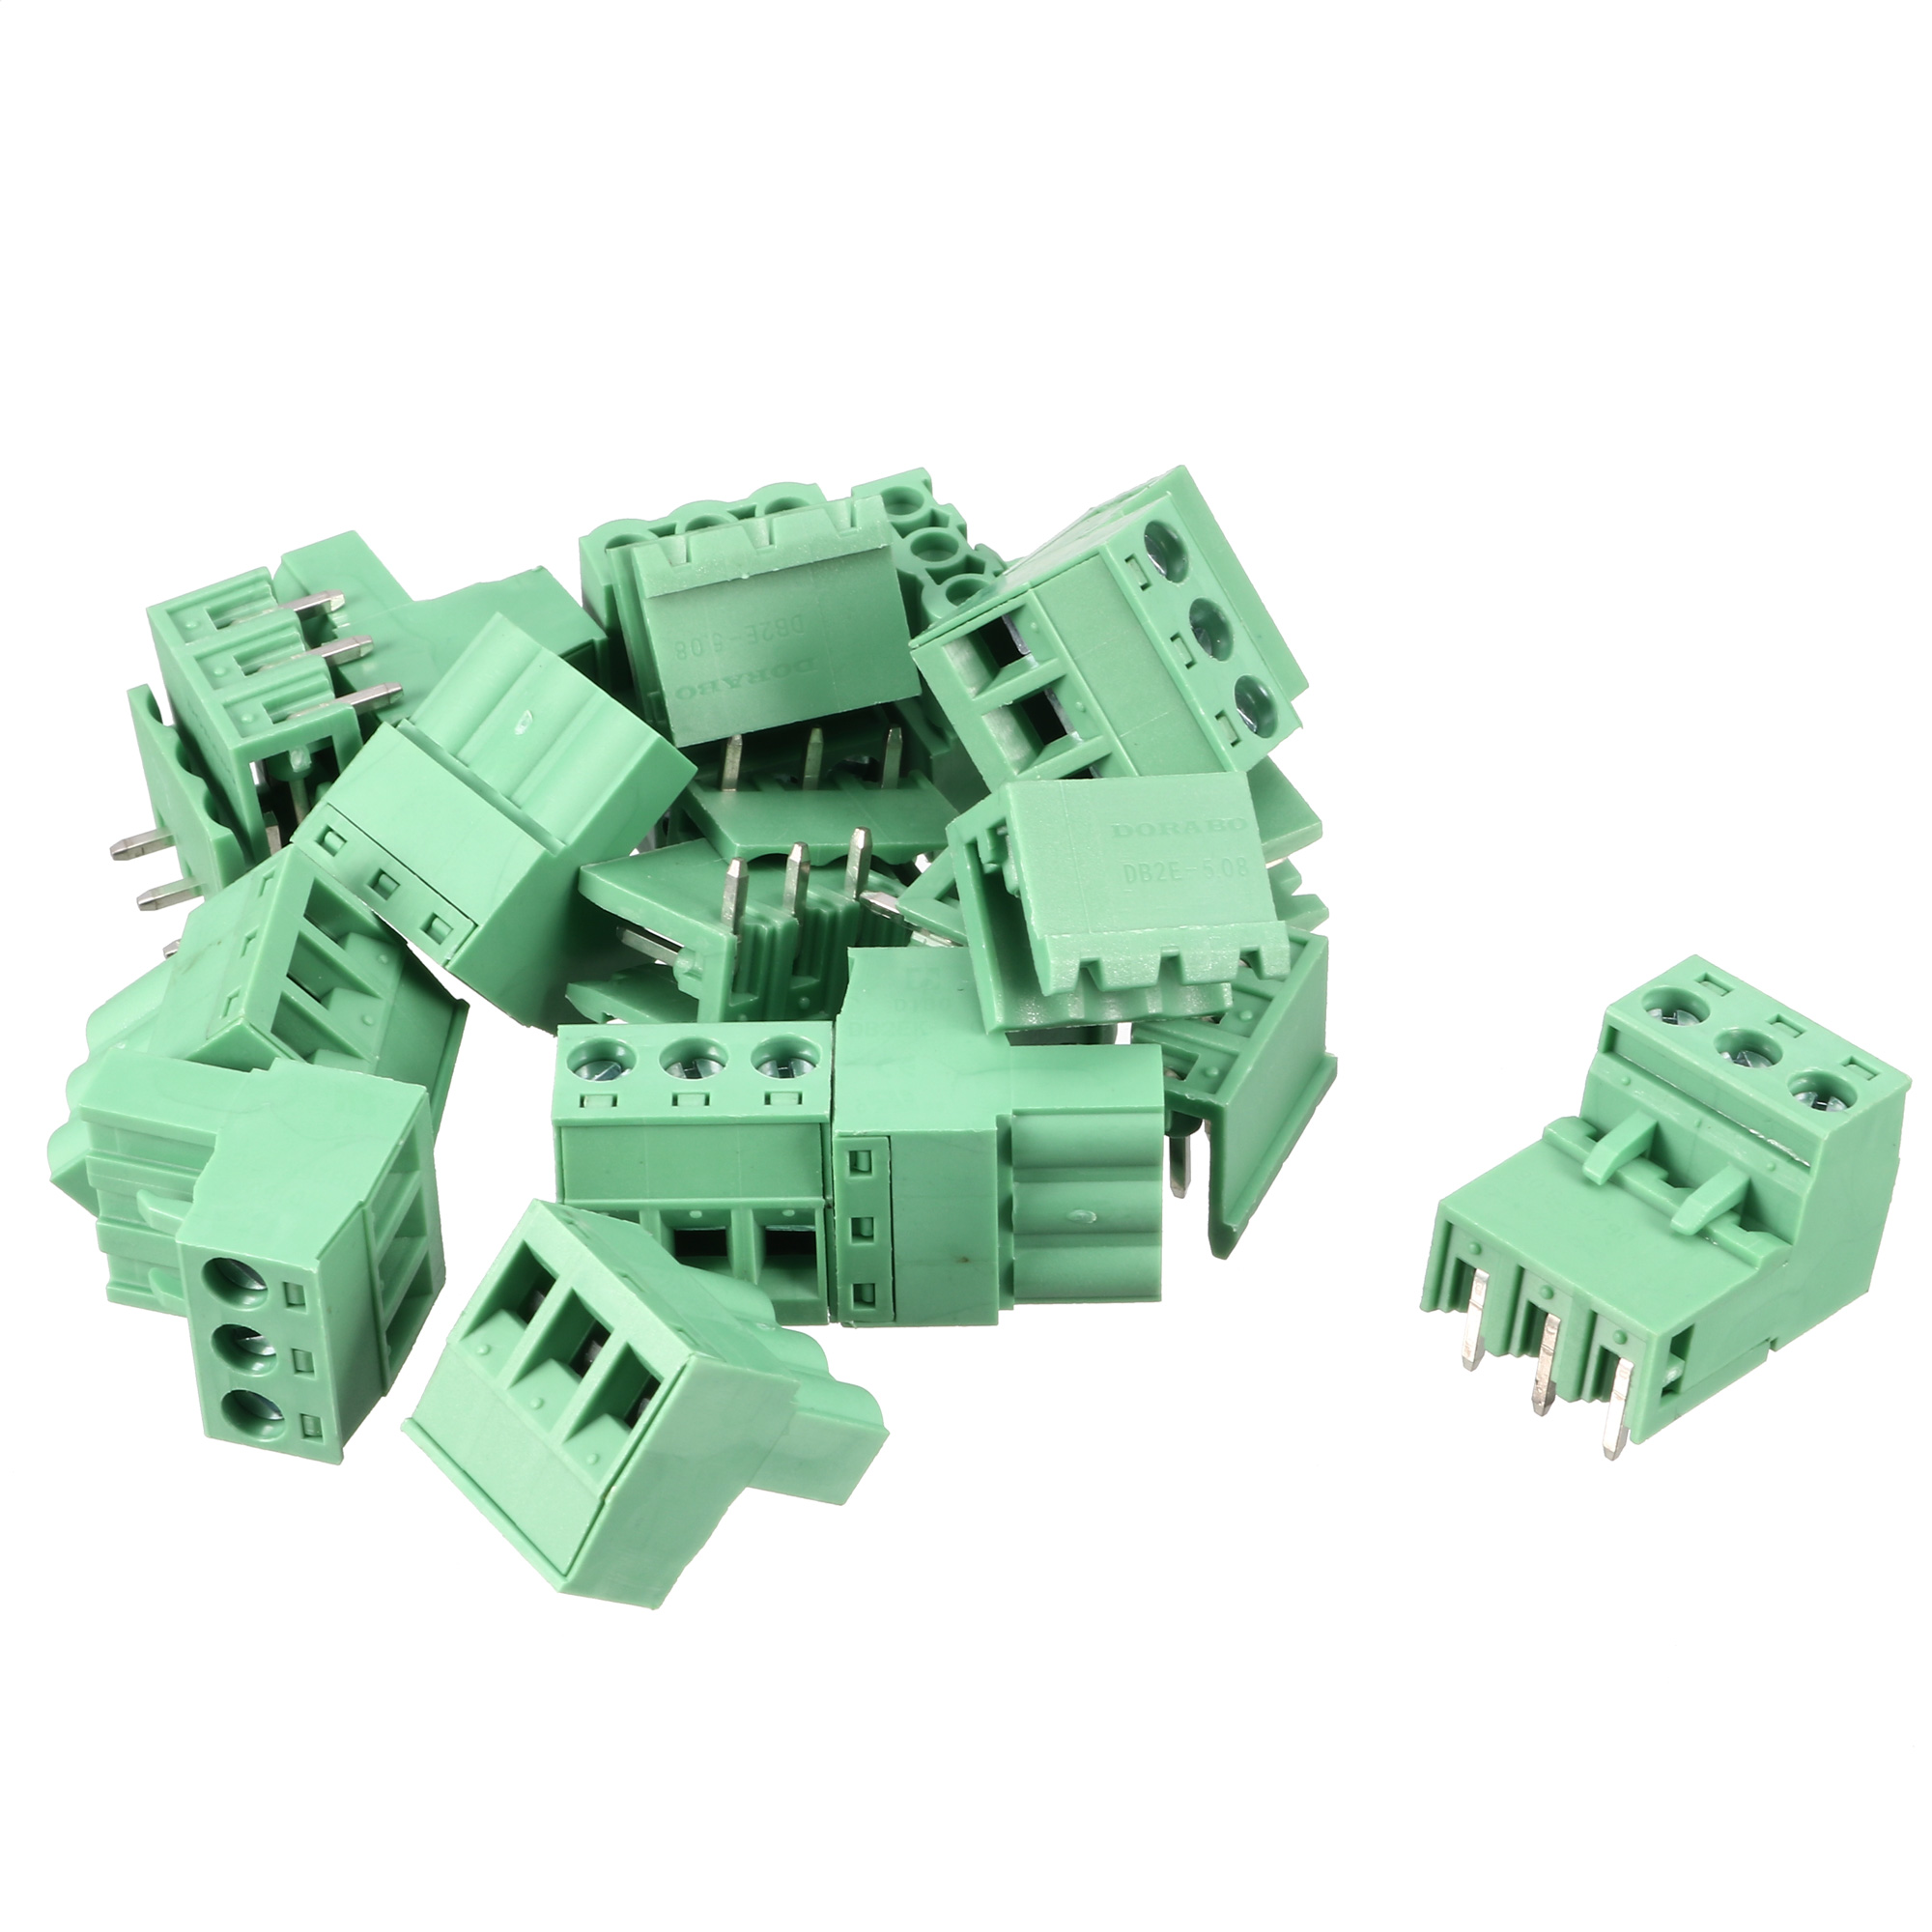 10 Set AC 300V 10A 5.08mm Spacing 3P Screw Pluggable Terminal Block Green